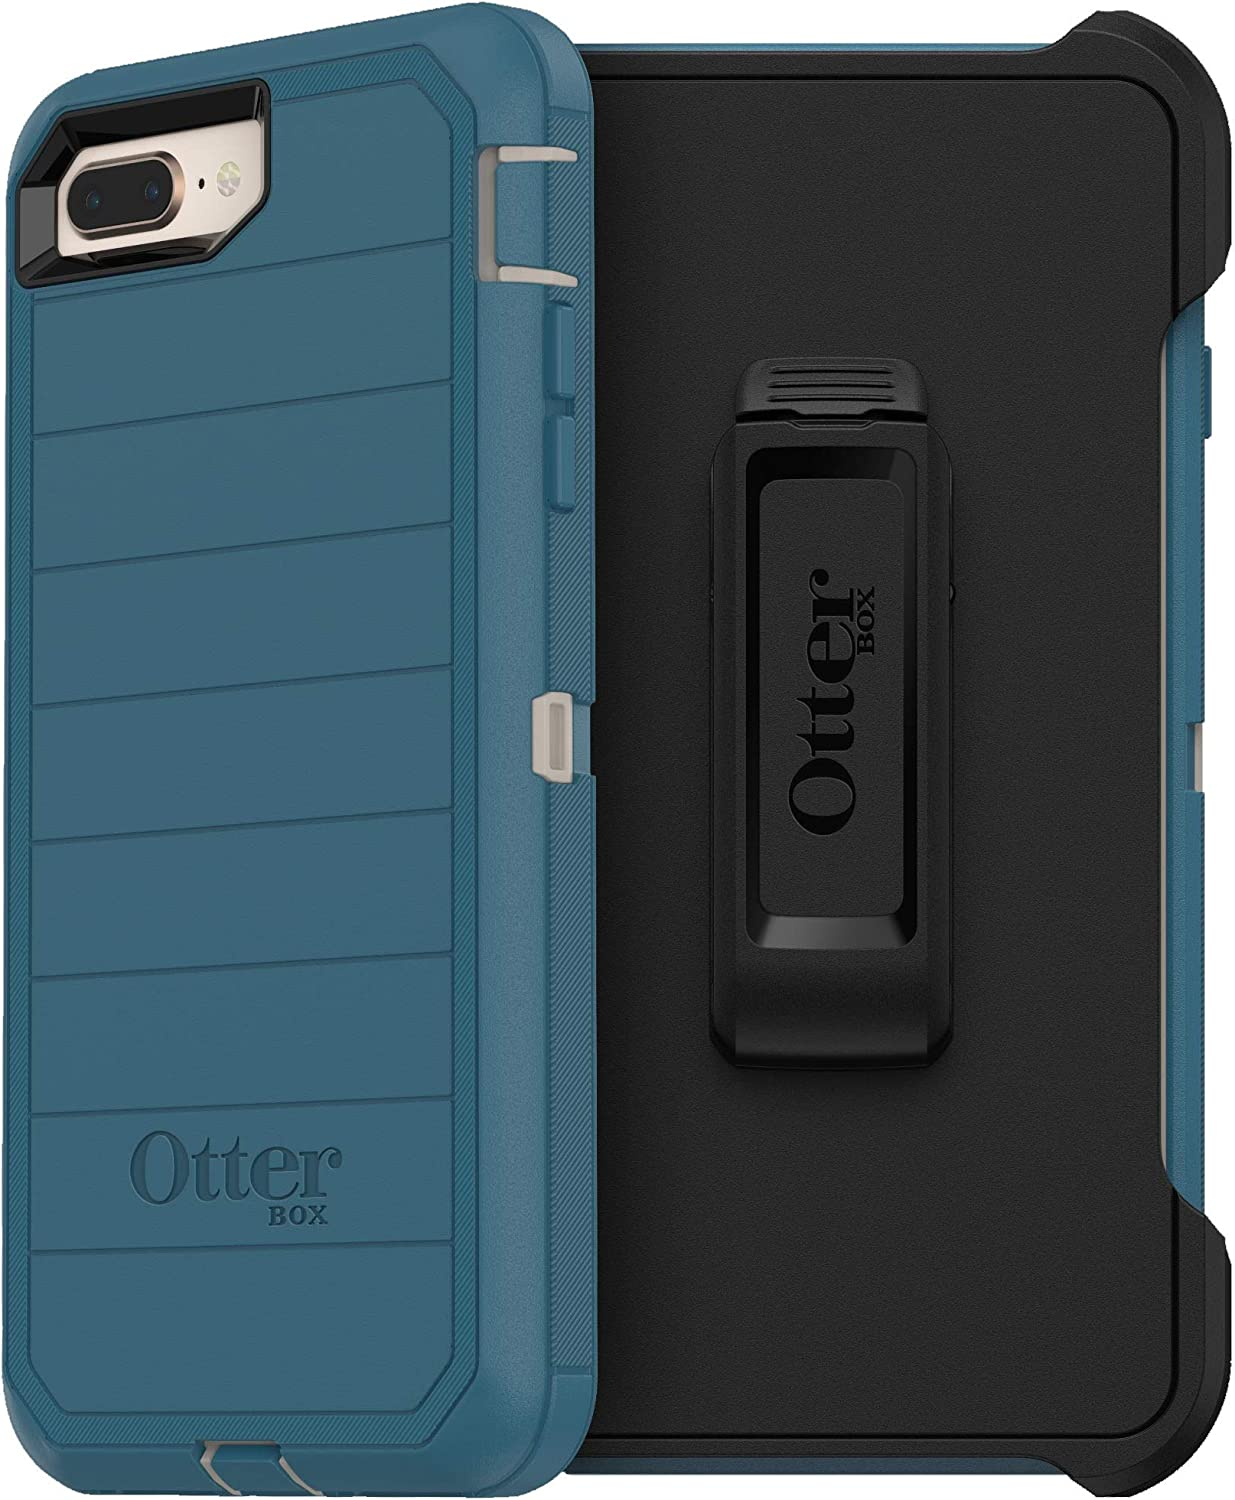 OtterBox Defender Series Rugged Case & Holster for iPhone 8 Plus & iPhone 7 Plus (ONLY) Non-Retail Packaging - Big Sur - with Microbial Defense